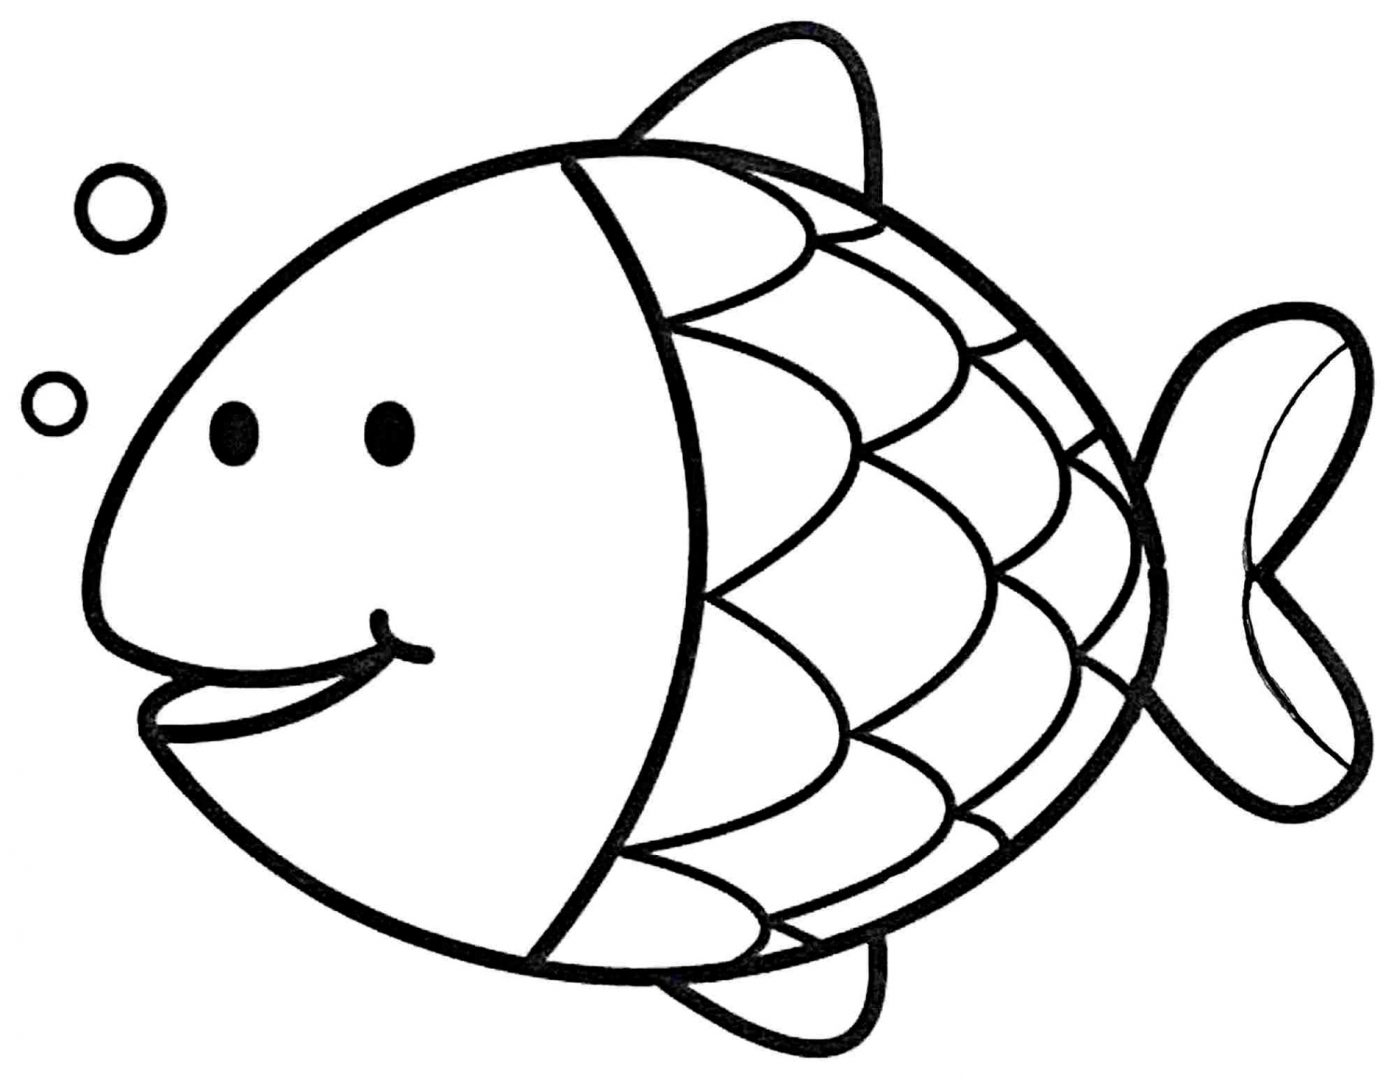 Colouring Pages For Early Years : Galeria de imagenes: Dibujos de peces